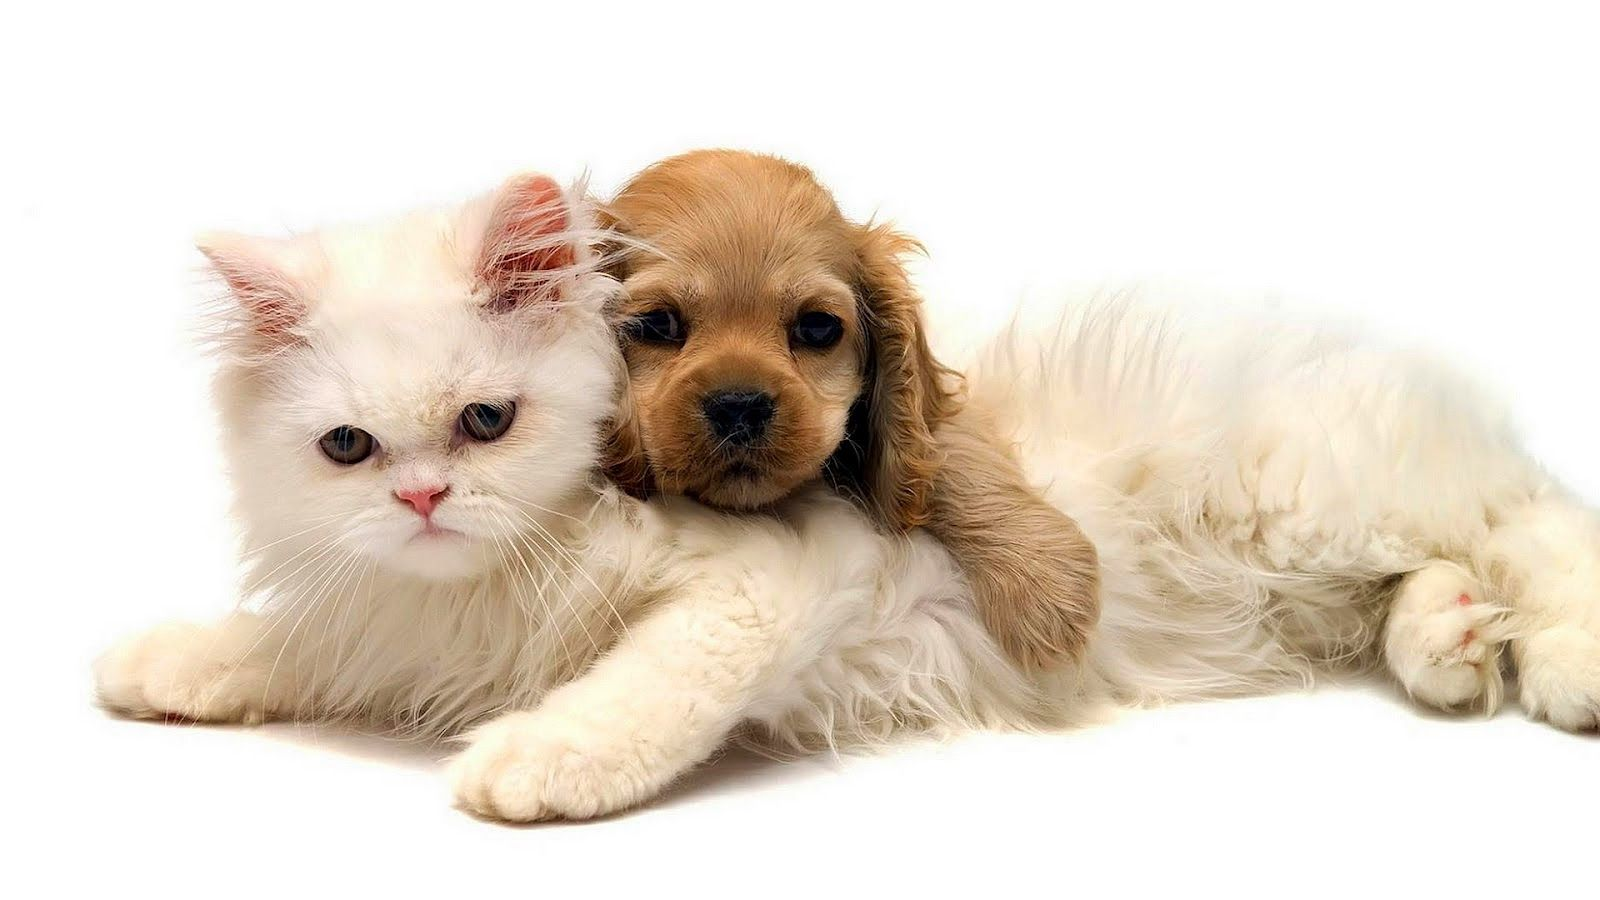 Cats And Dogs Together Pictures Cute Cats And Dogs Dog Cat Pictures Dog Cuddles